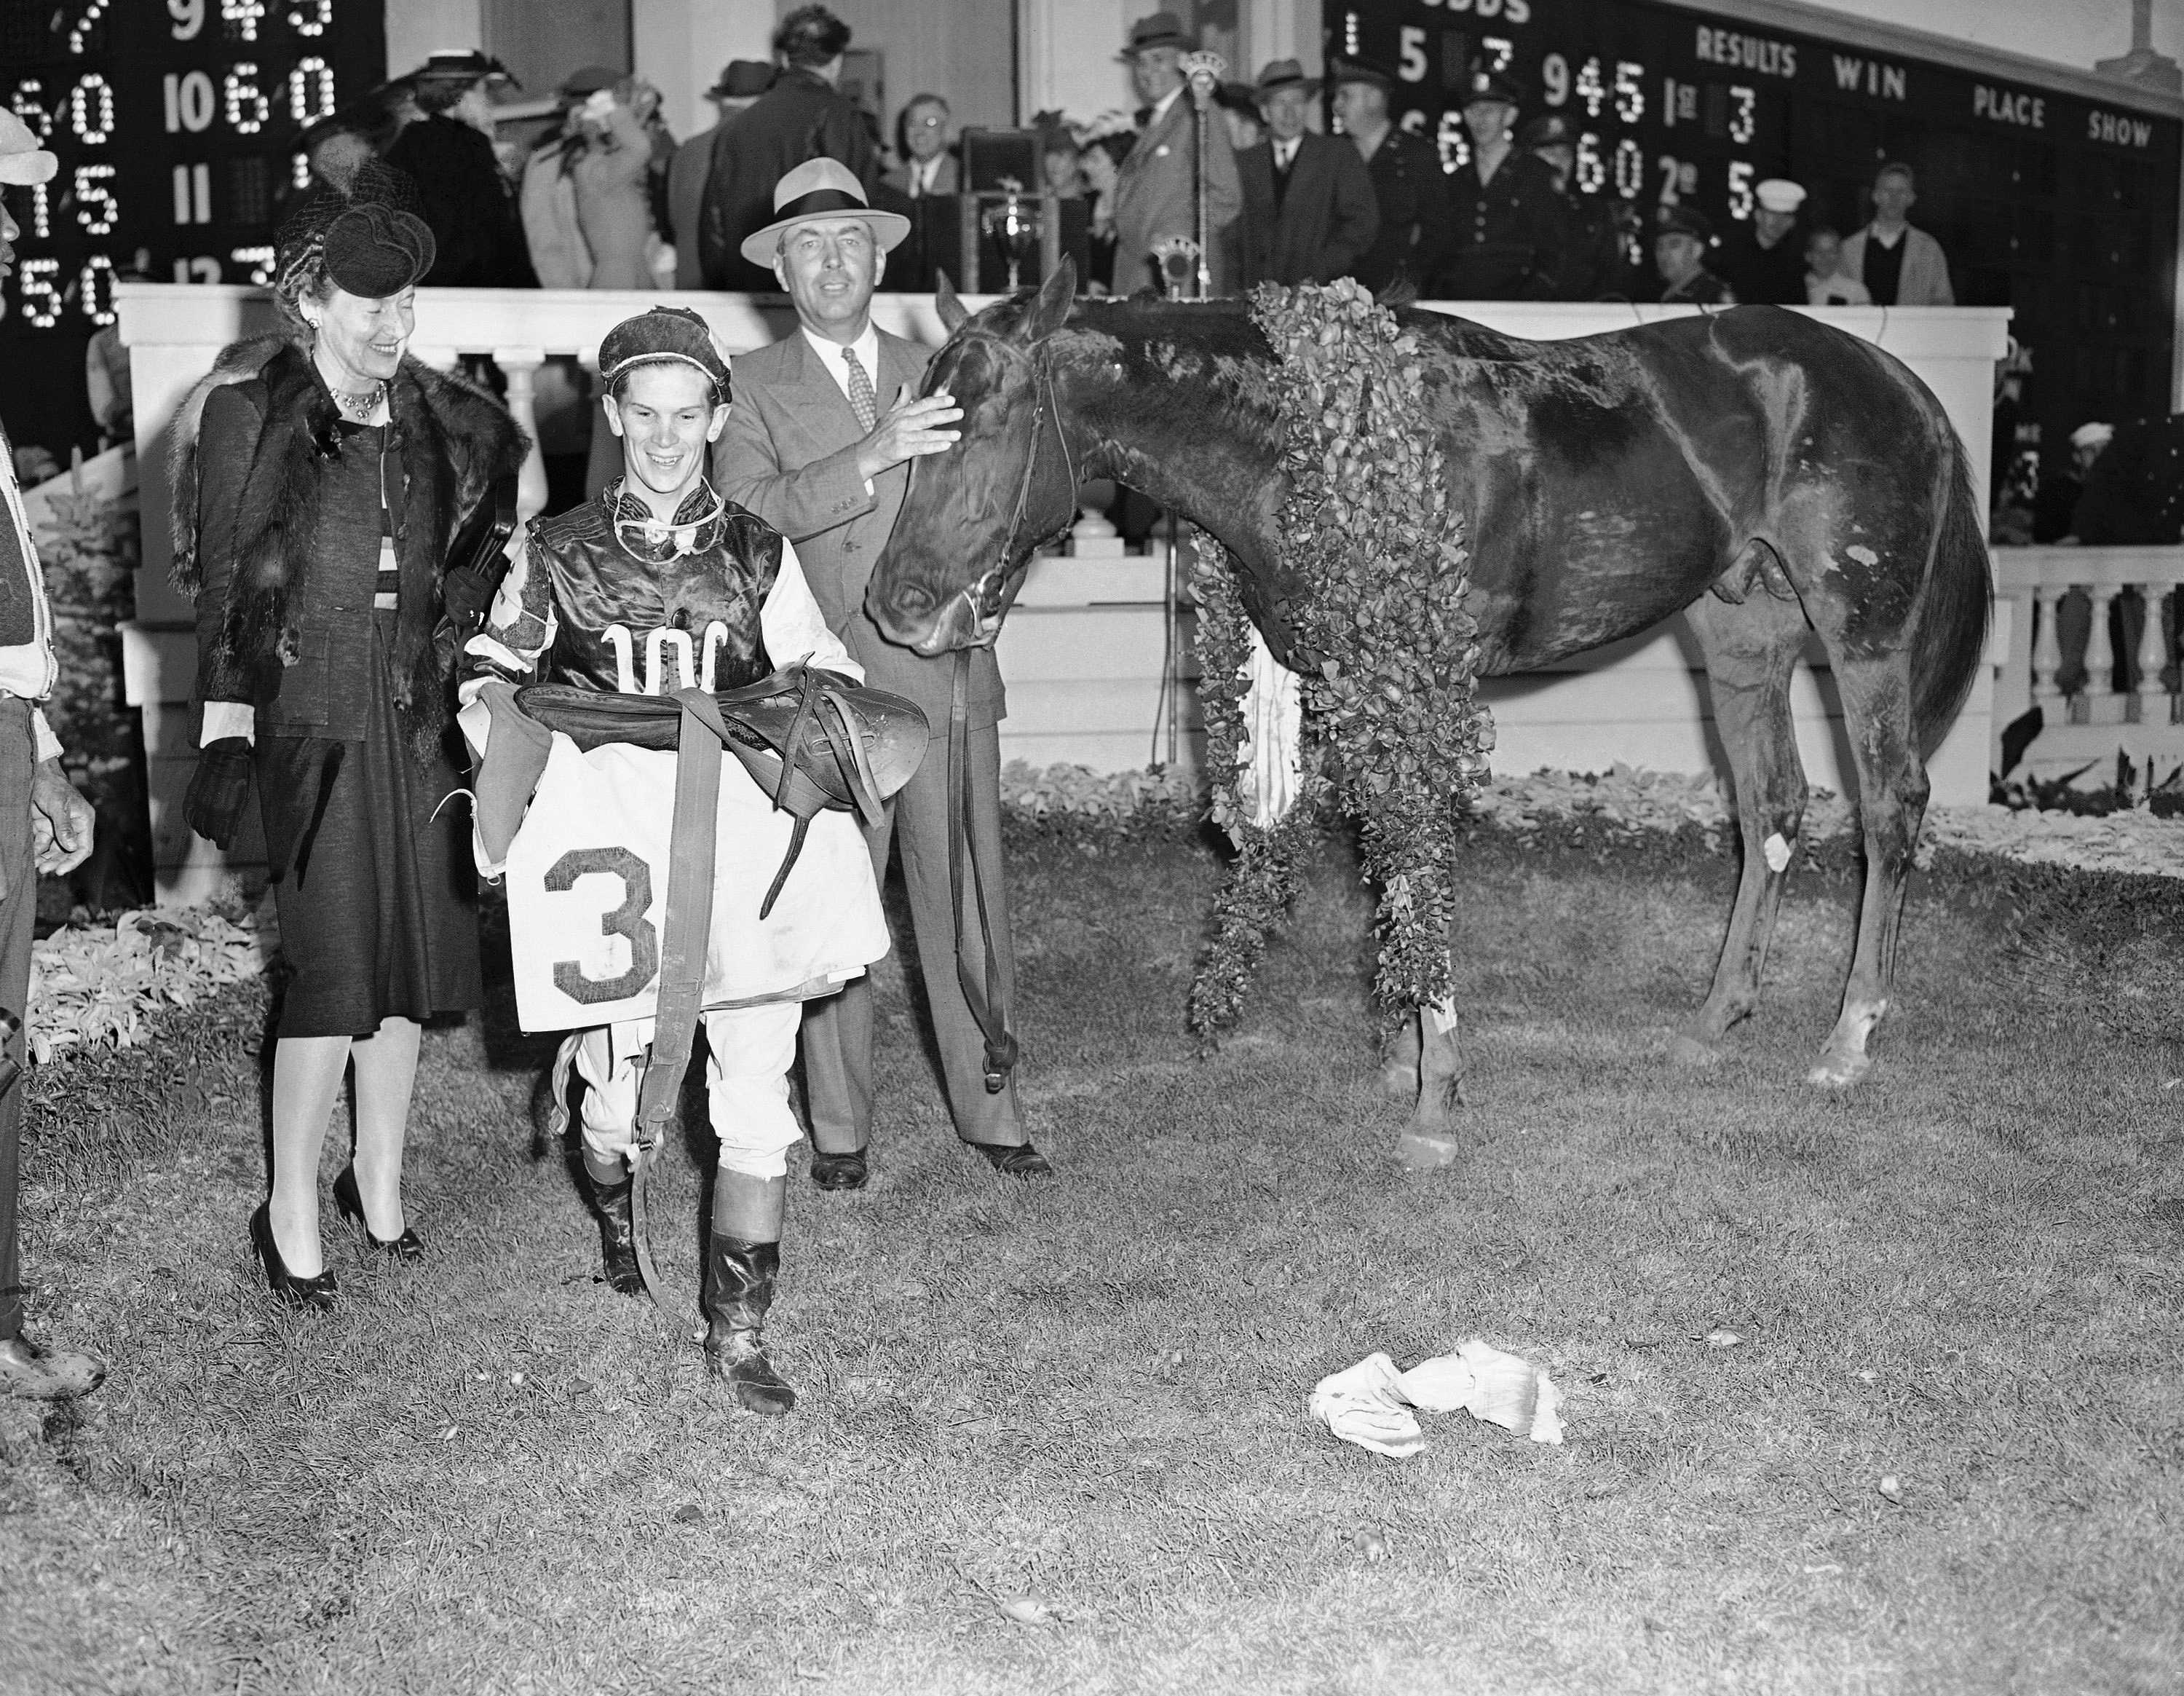 Wearing a garland of Roses, Assault stands in the Kentucky Derby winner's circle, May 4, 1946 at Louisville, with (left to right) Mrs. Robert J. Kleberg, Jr.&#x3B; Jockey Warren Mehrtens&#x3B; and owner Robert J. Kleberg, Jr. of King Ranch, Texas.